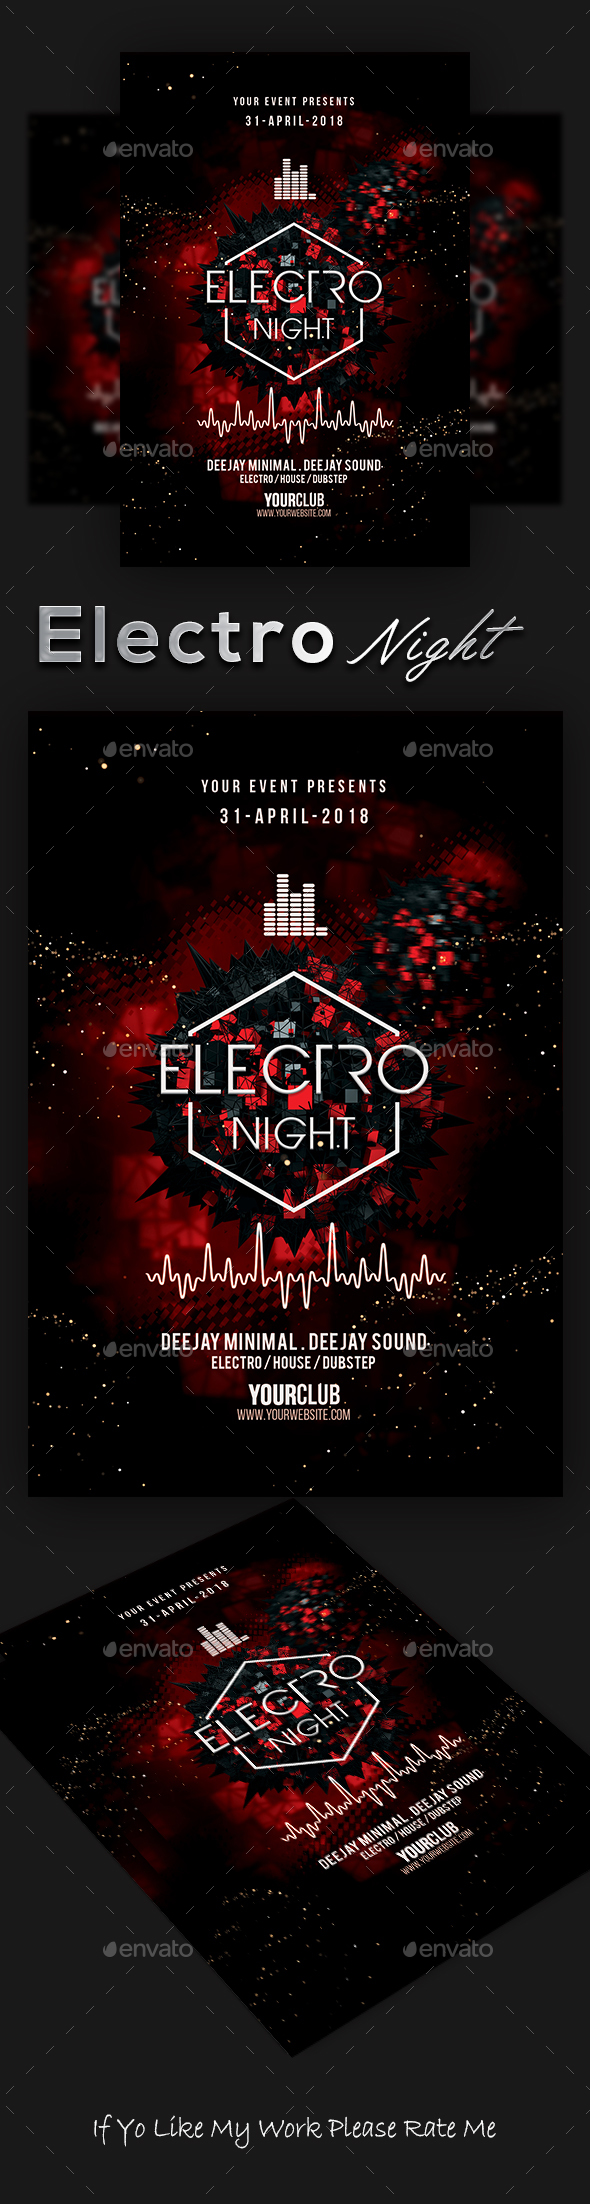 Electro Night Party Flyer - Clubs & Parties Events